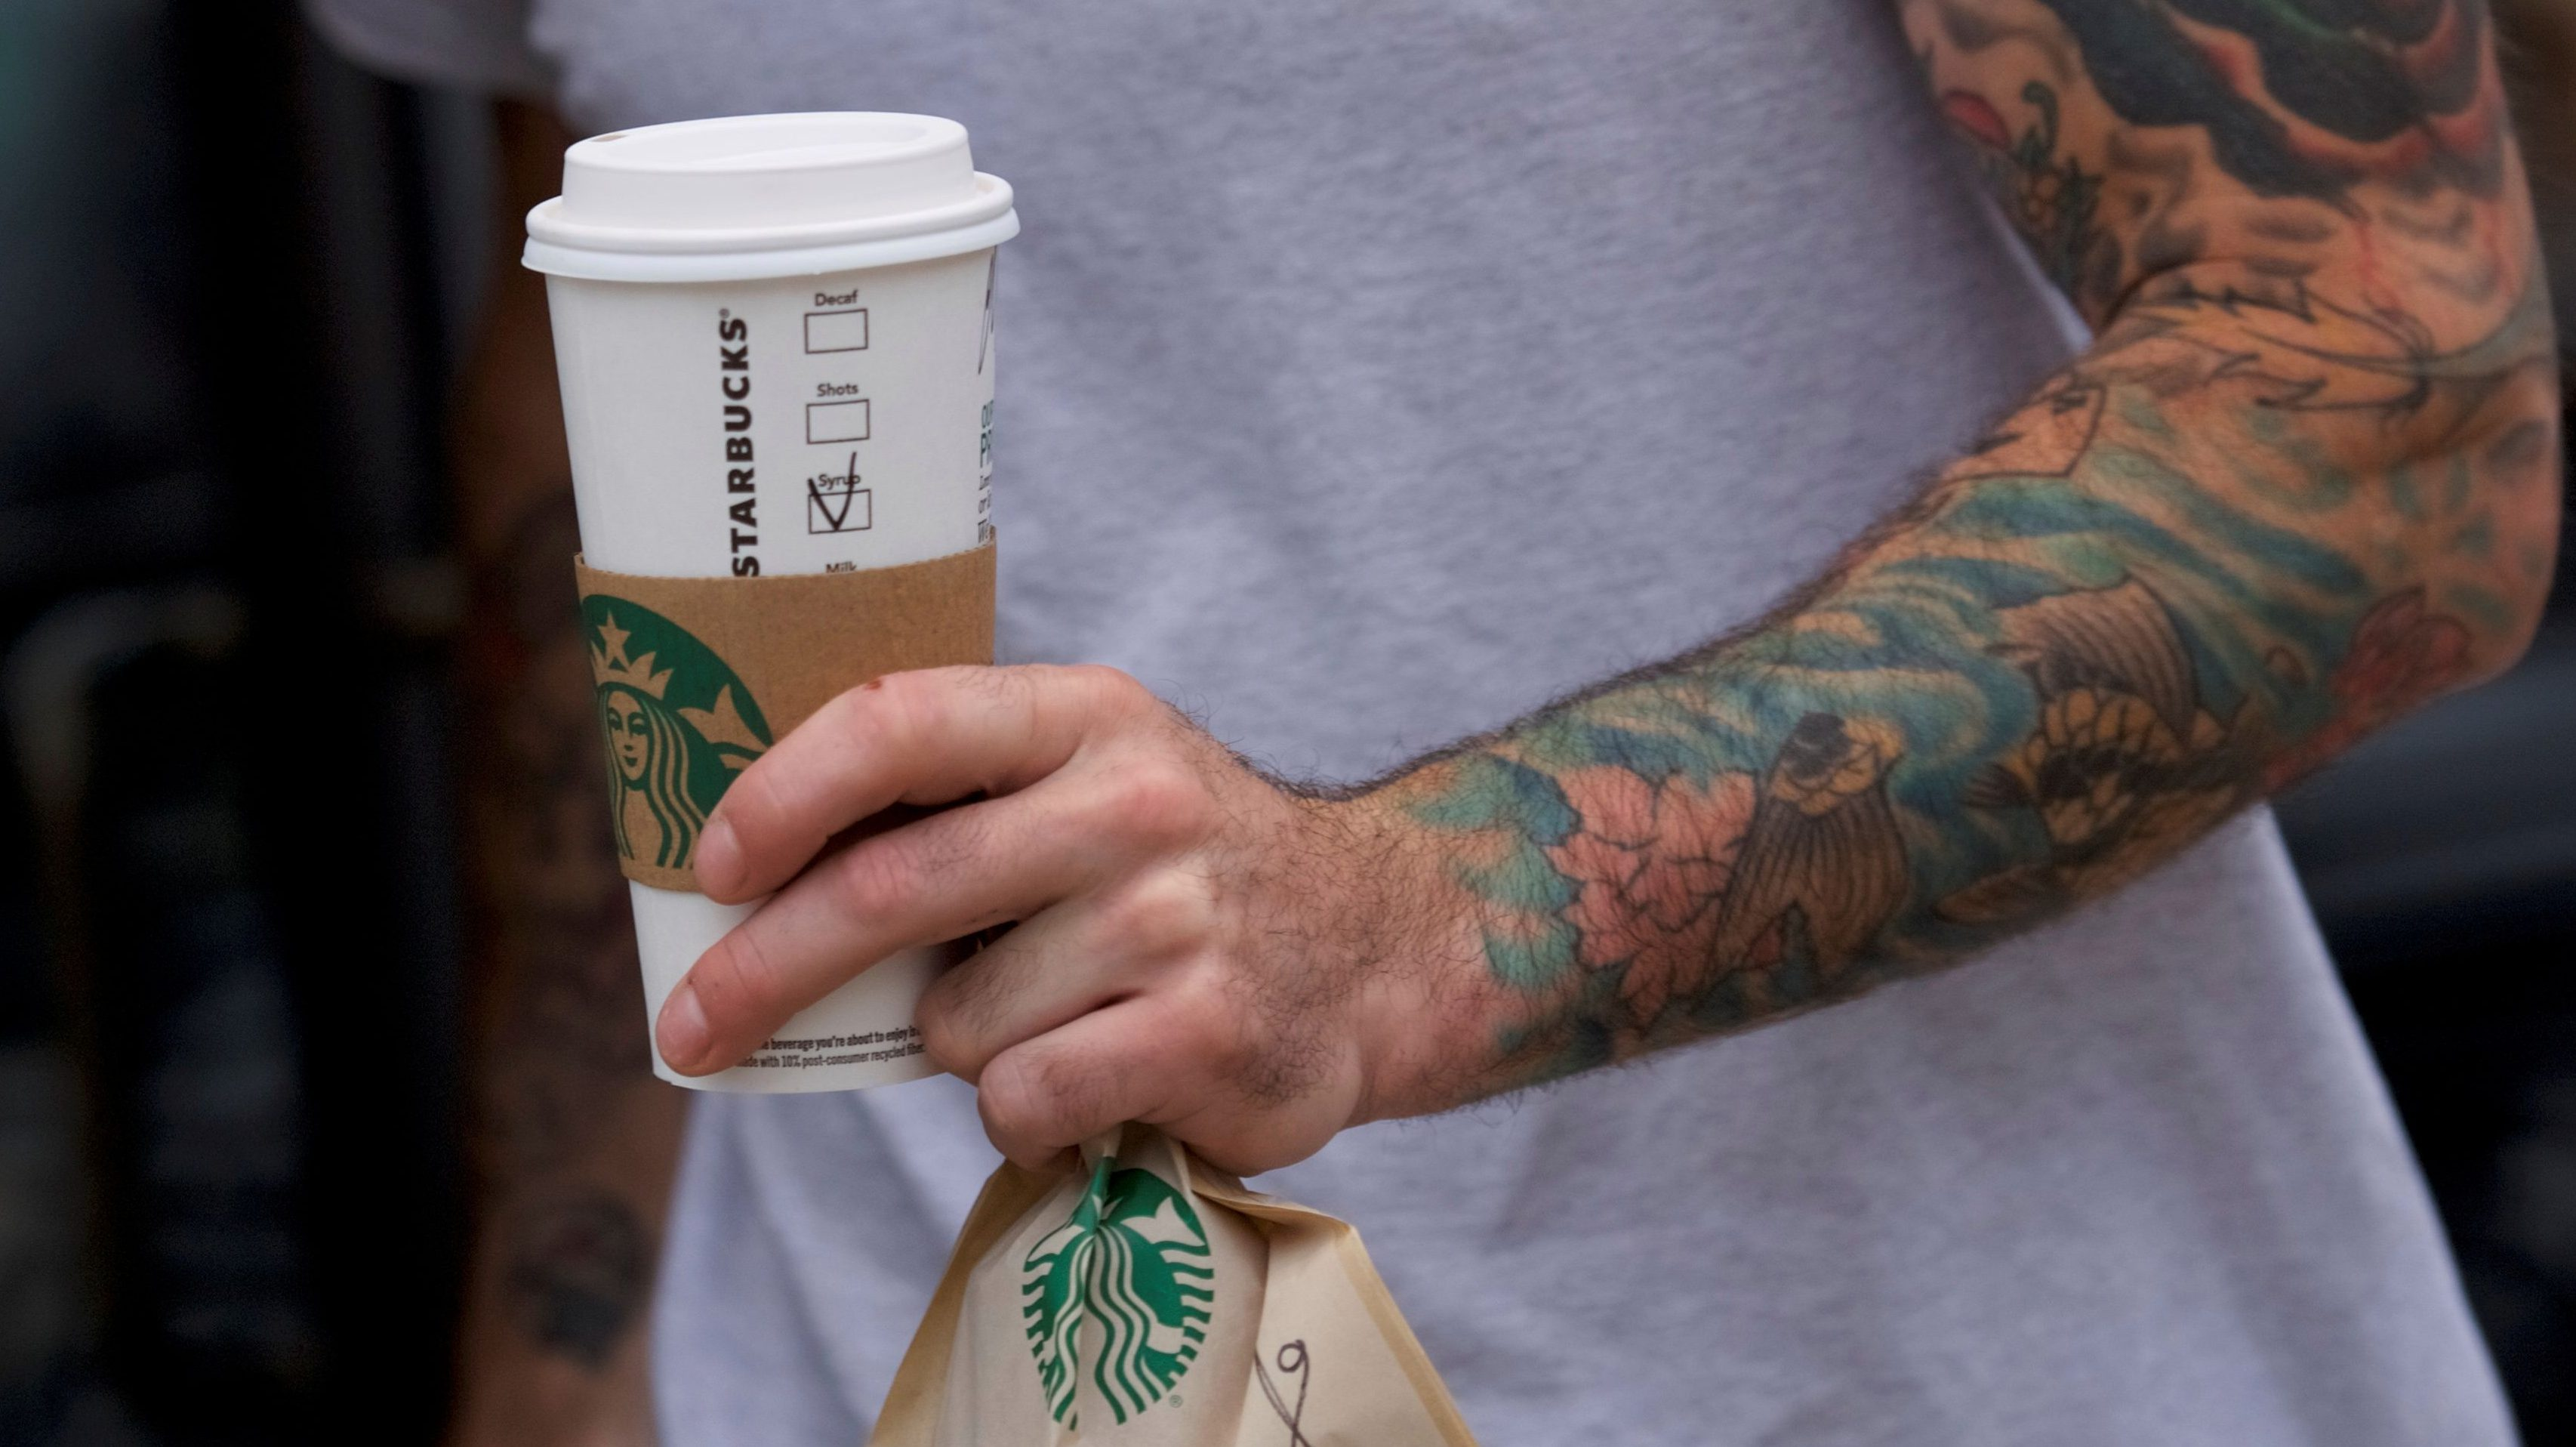 A man exits a Center City Starbucks clutching a hot beverage and bag of food